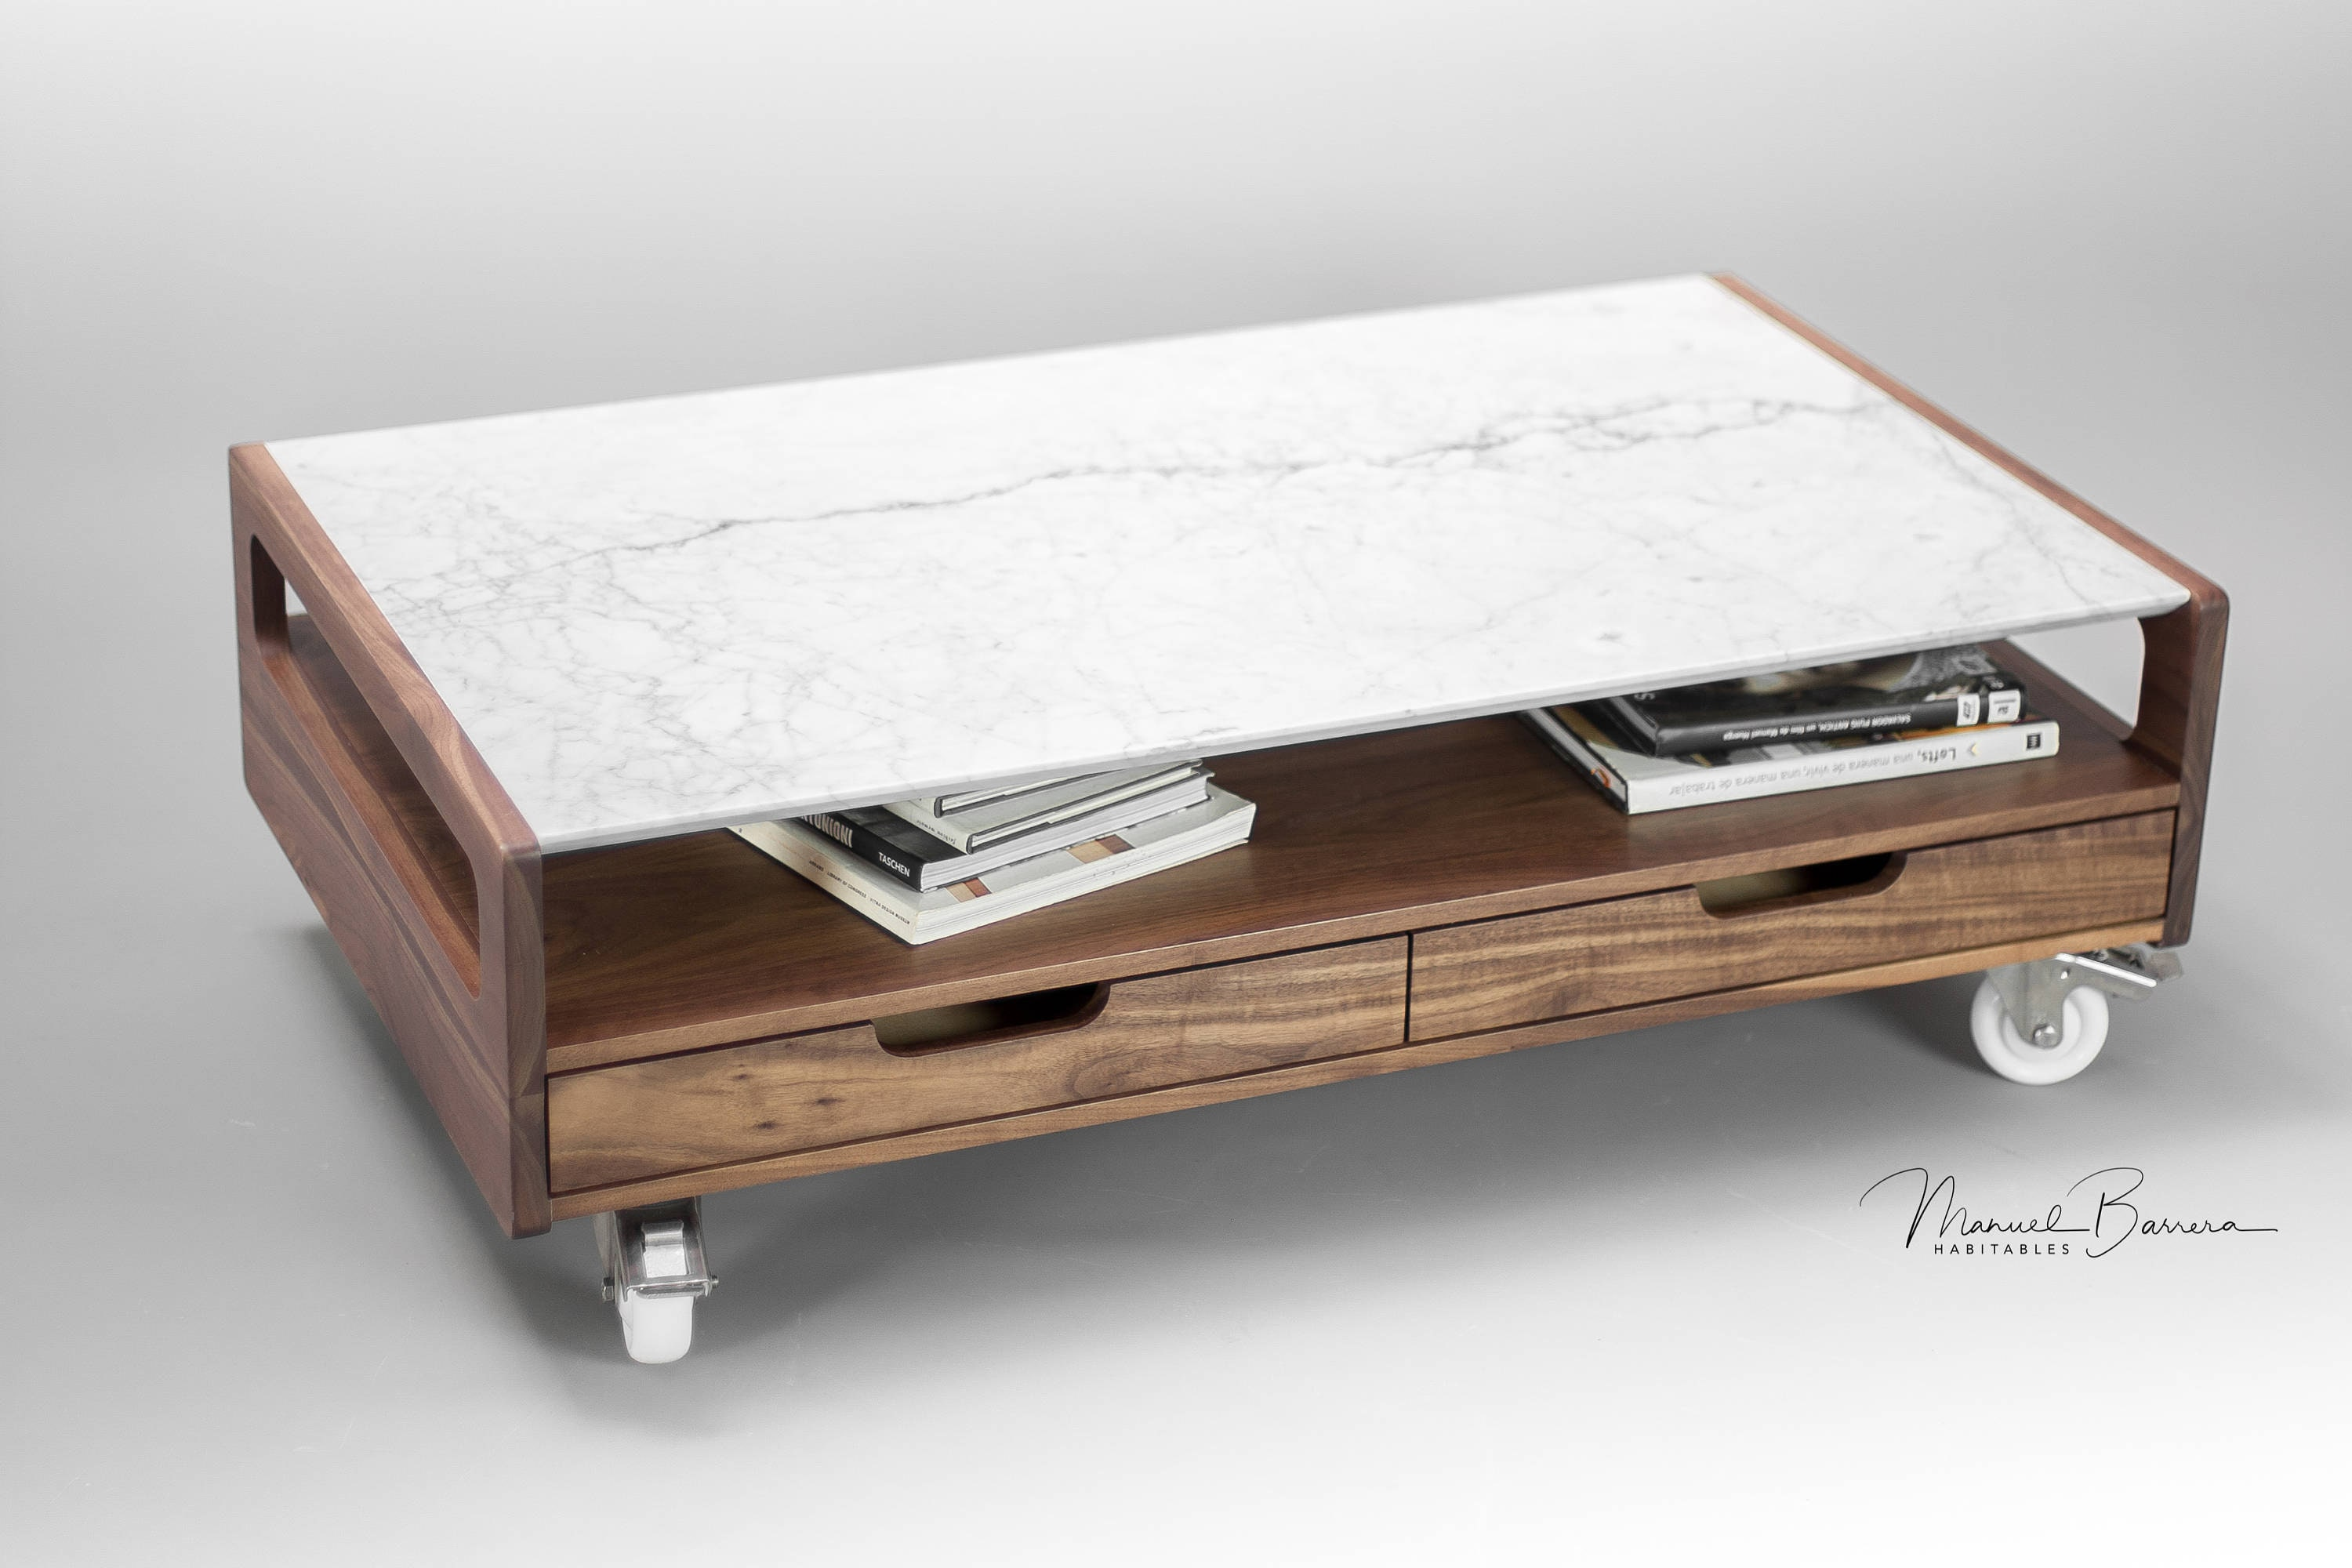 Marble Coffee table, center table , living room table made of ...